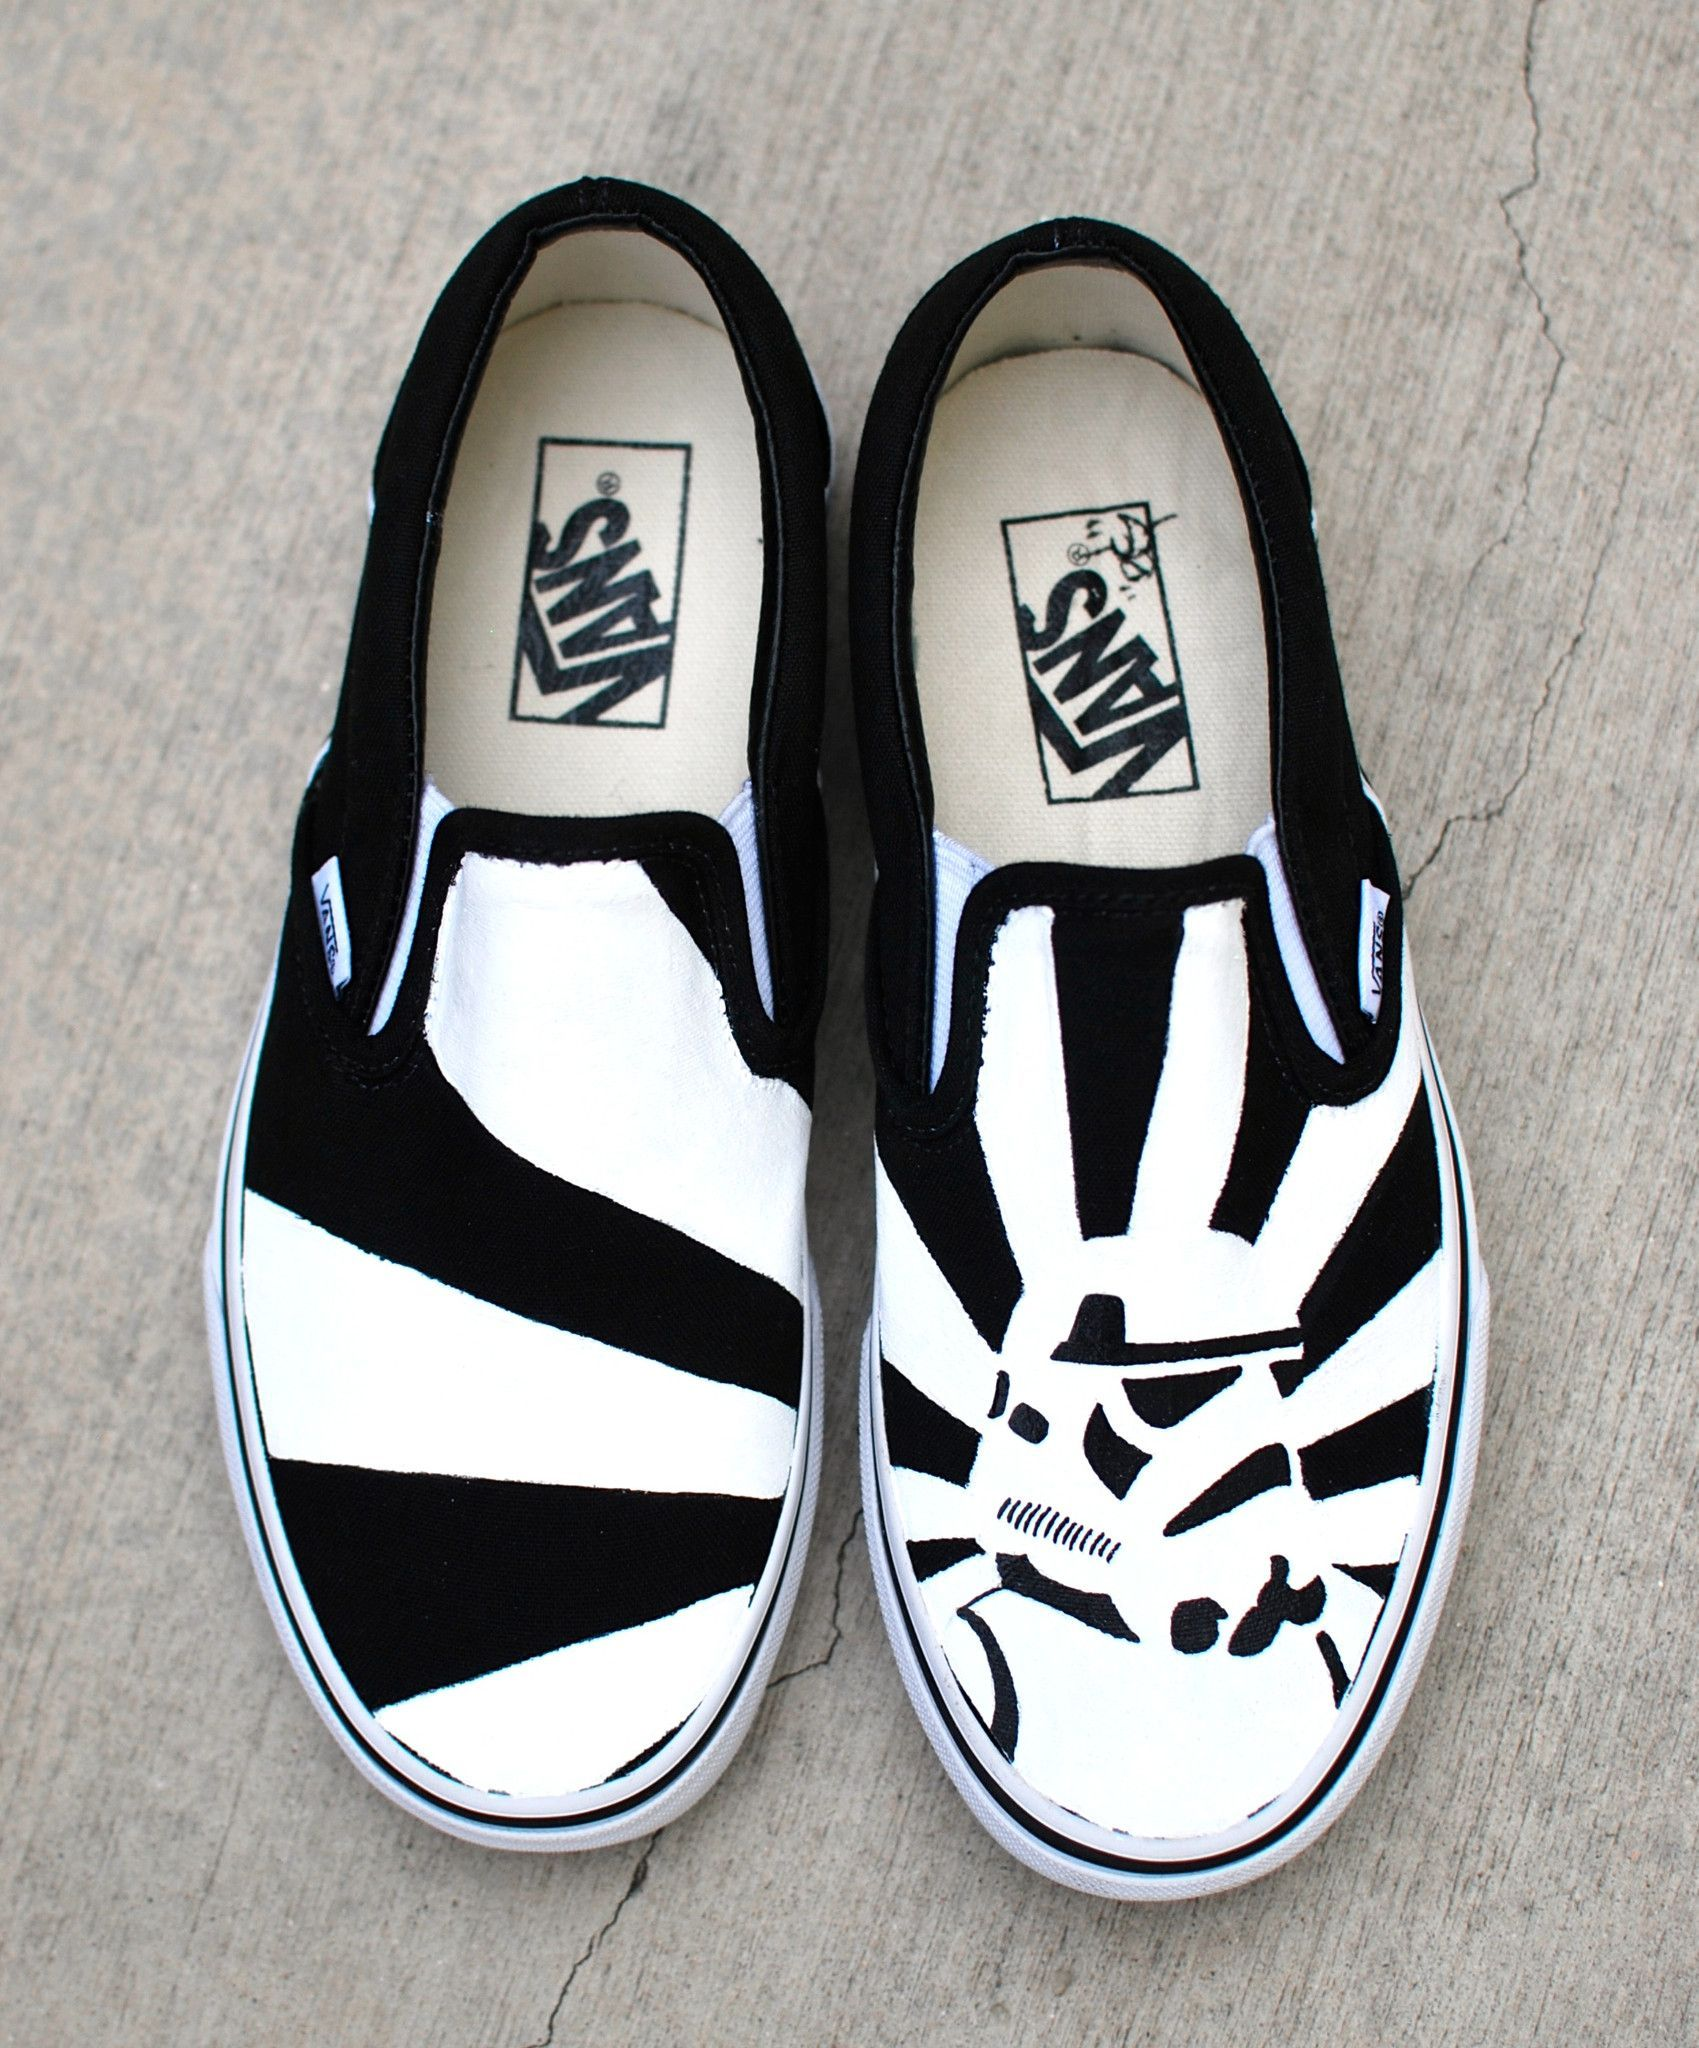 b4a9ebce27 These one-of-a-kind hand-painted Vans Slip ons Feature a black and white storm  trooper on one shoe and the rising sun behind him.